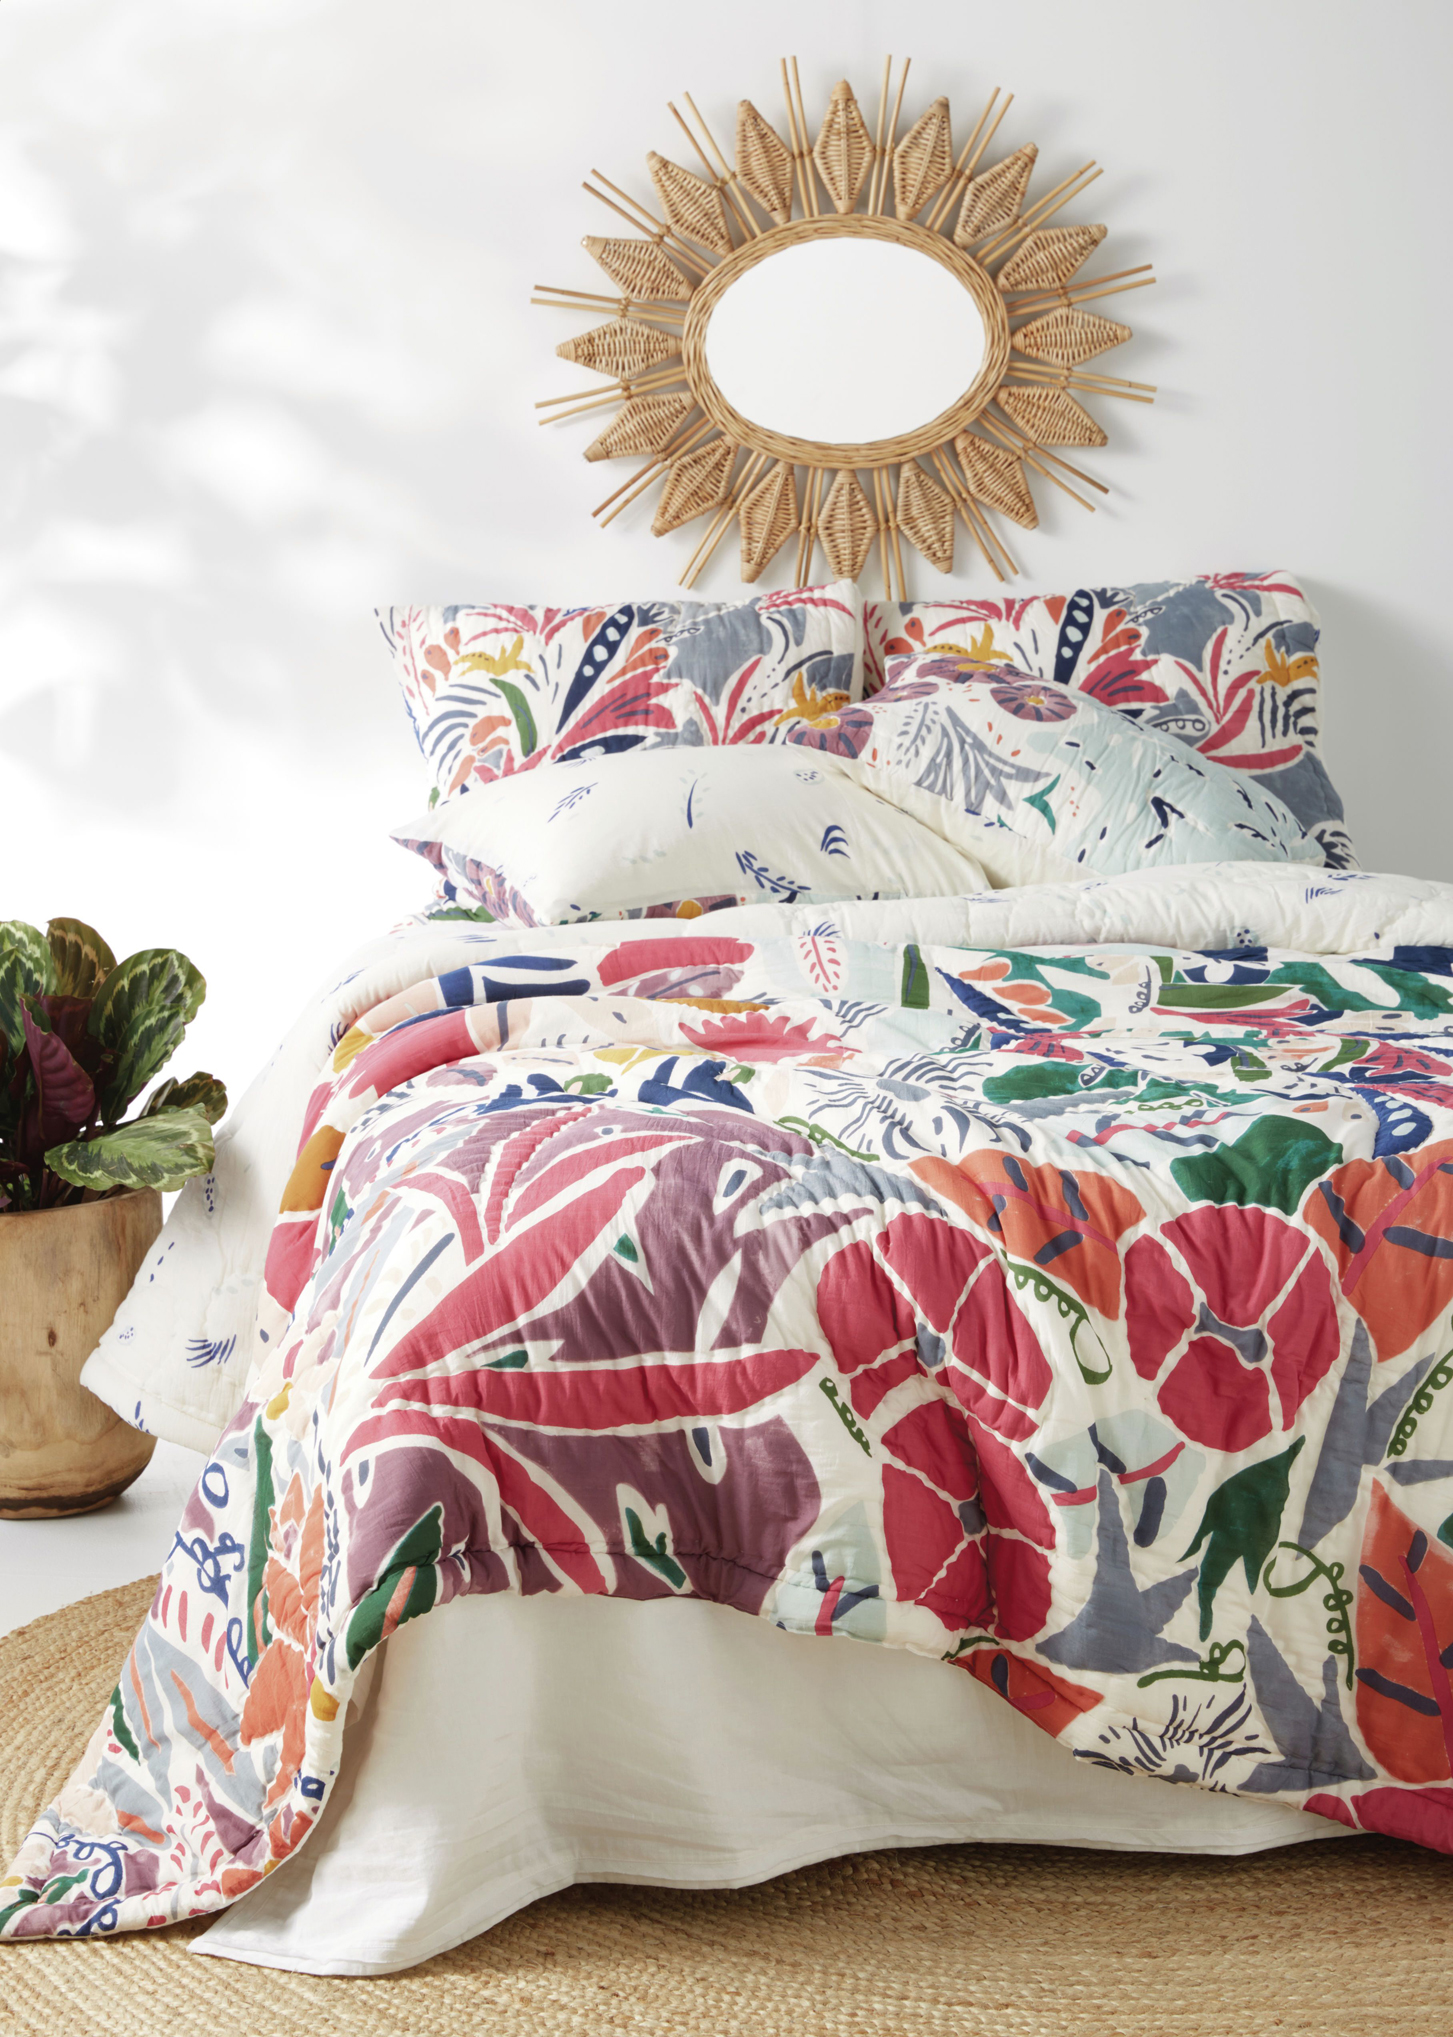 Colourful quilted bedspread